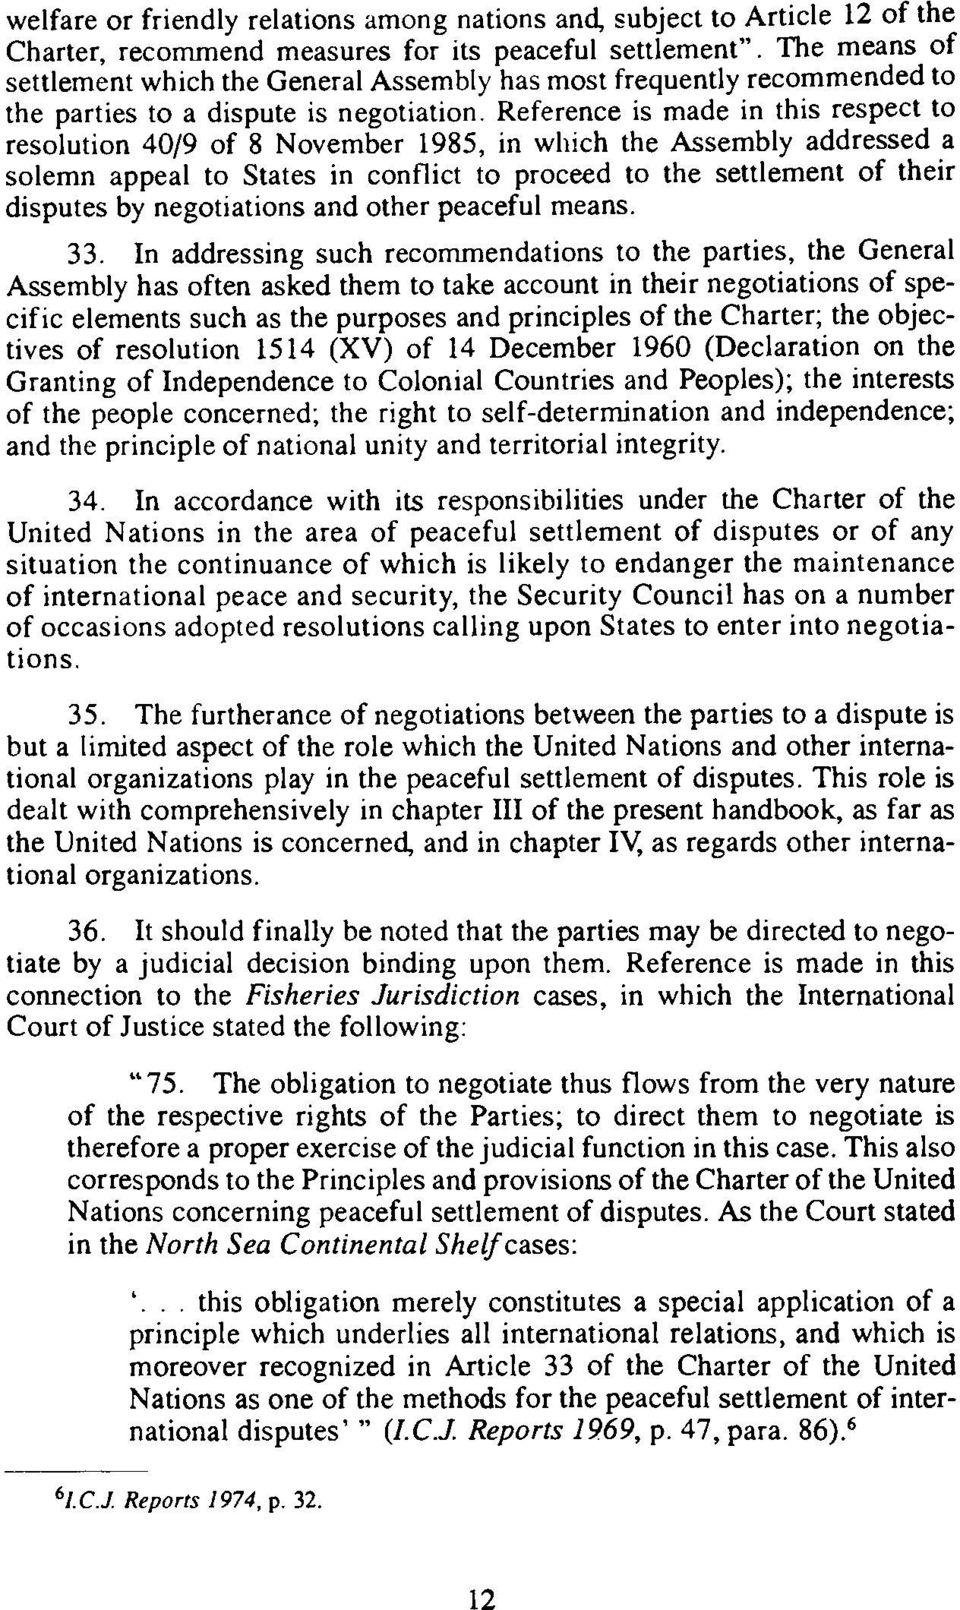 Reference is made in this respect to resolution 40/9 of 8 November 1985, in which the Assembly addressed a solemn appeal to States in conflict to proceed to the settlement of their disputes by